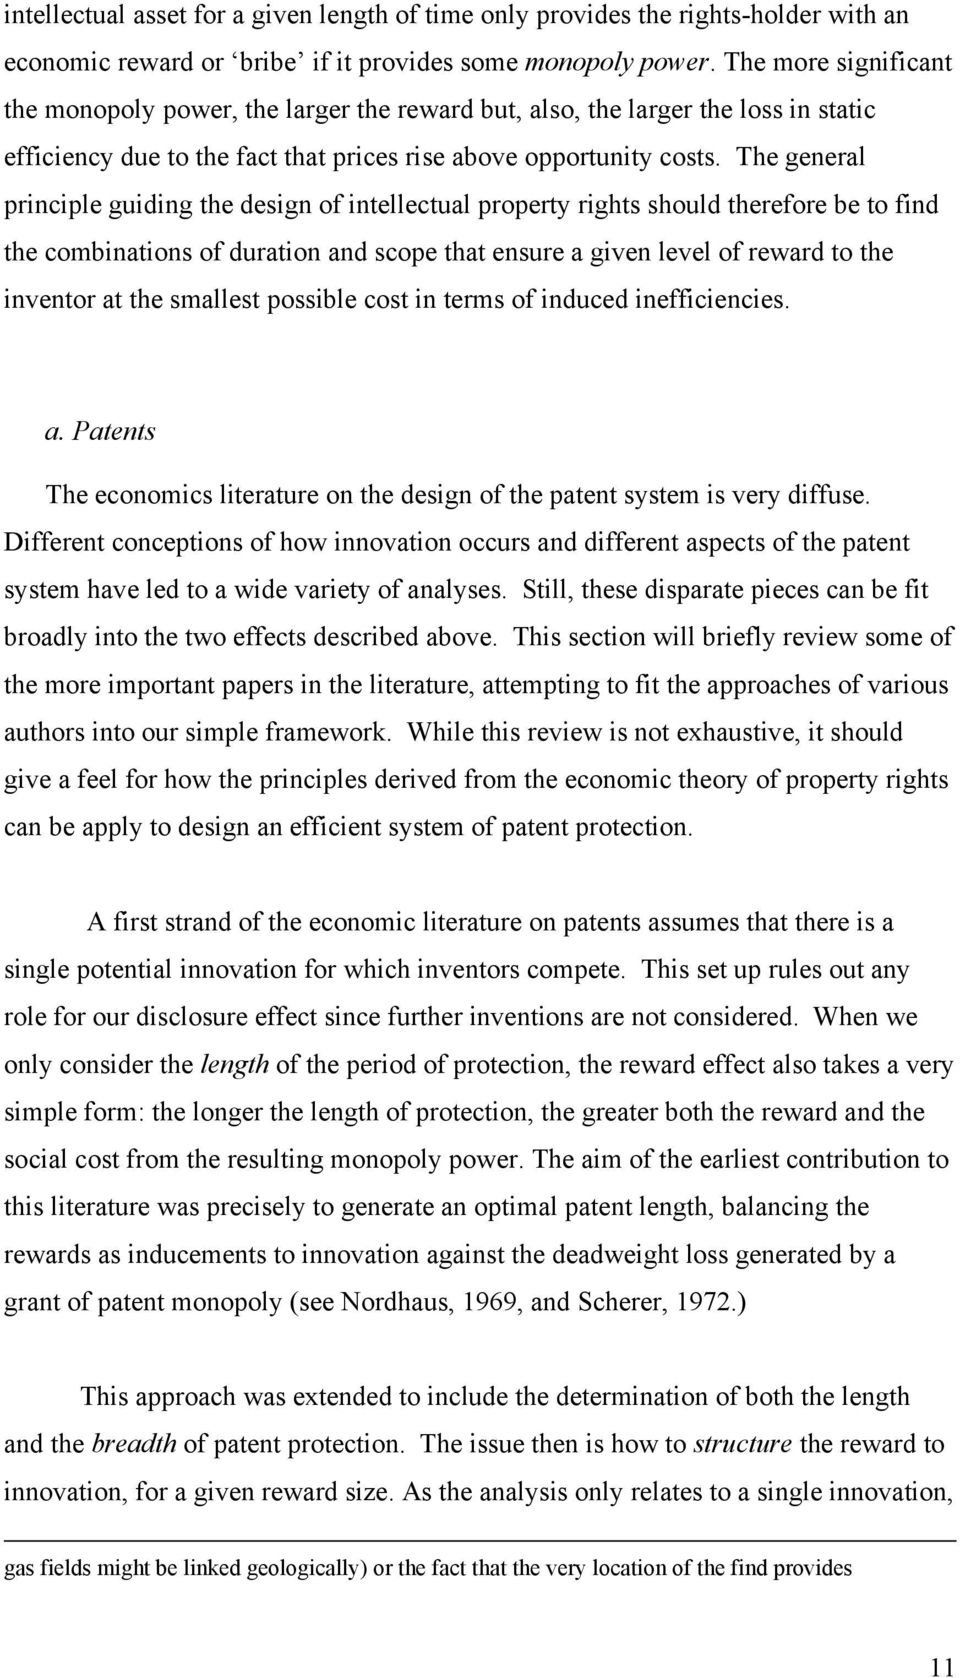 The general principle guiding the design of intellectual property rights should therefore be to find the combinations of duration and scope that ensure a given level of reward to the inventor at the